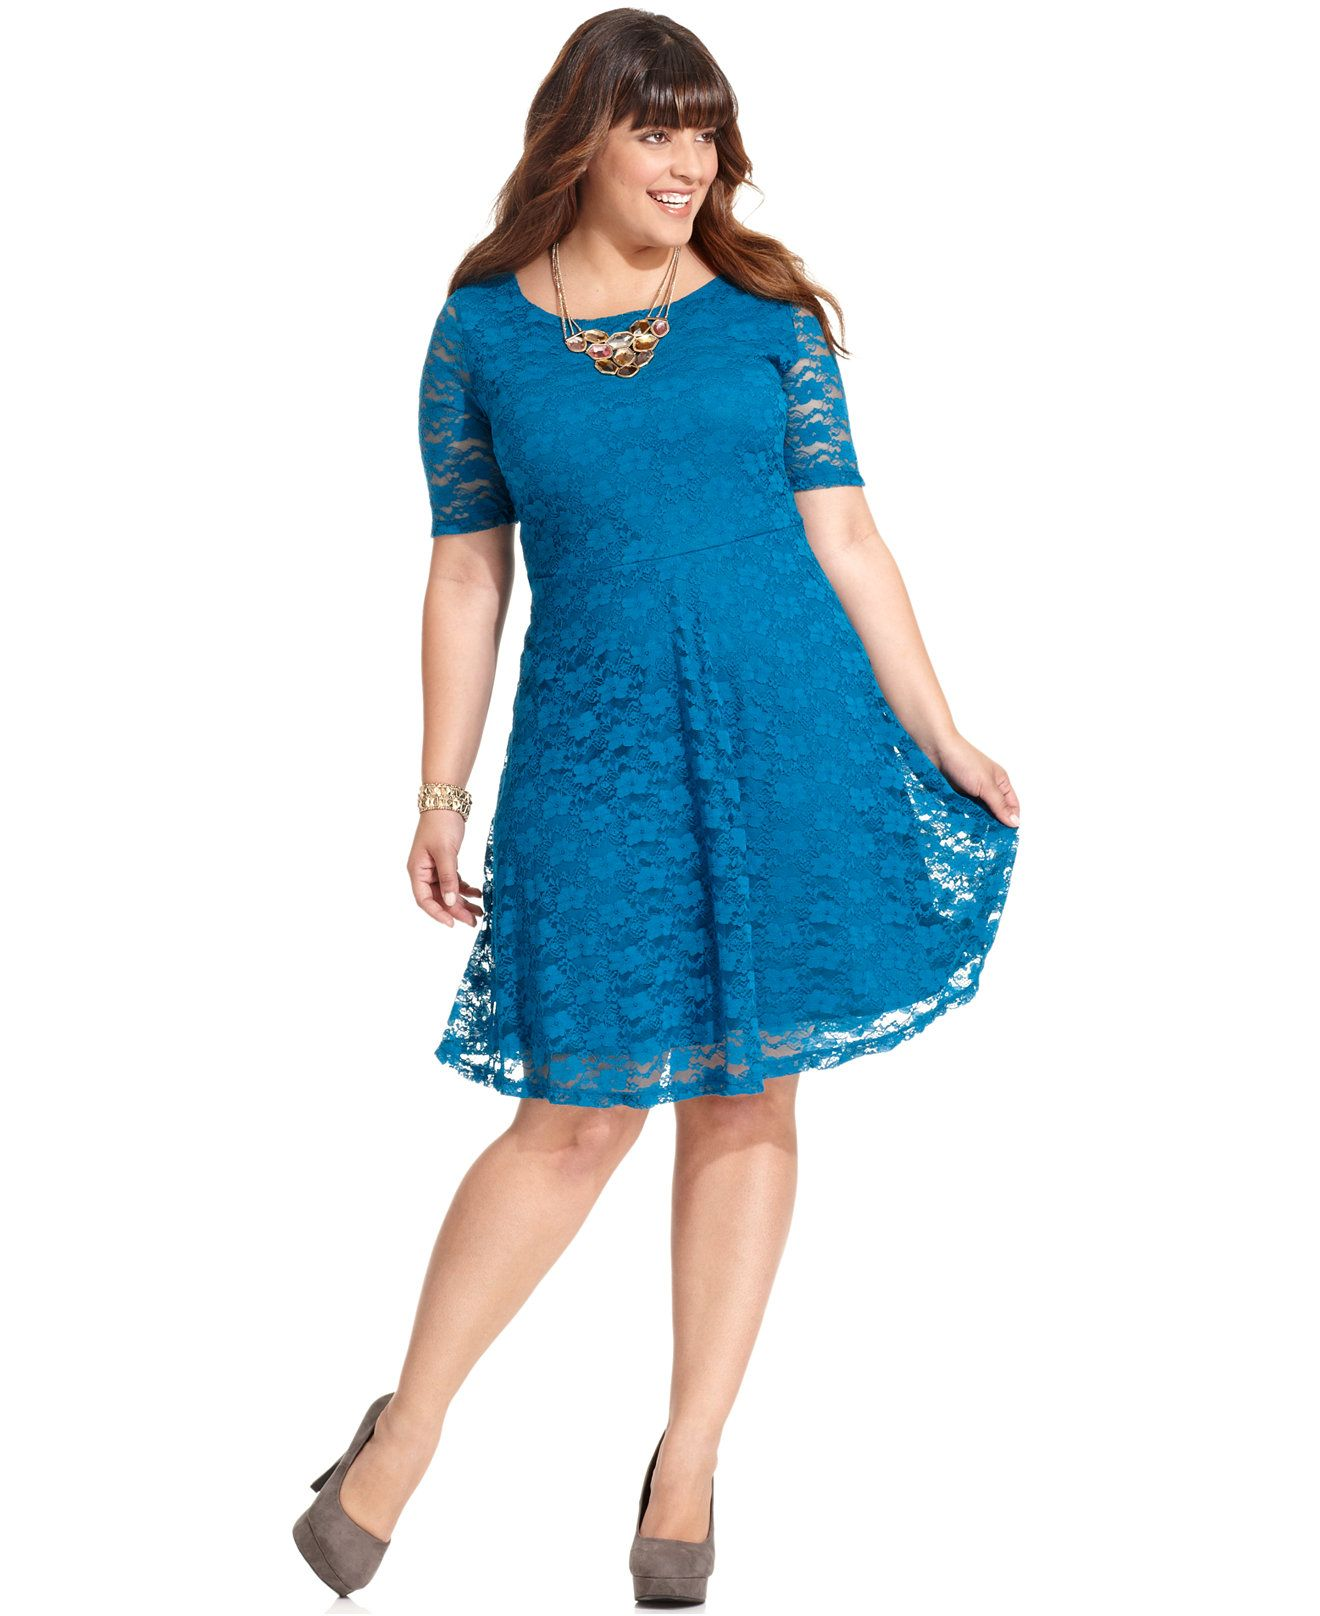 Collection plus size junior dresses pictures fashion trends and